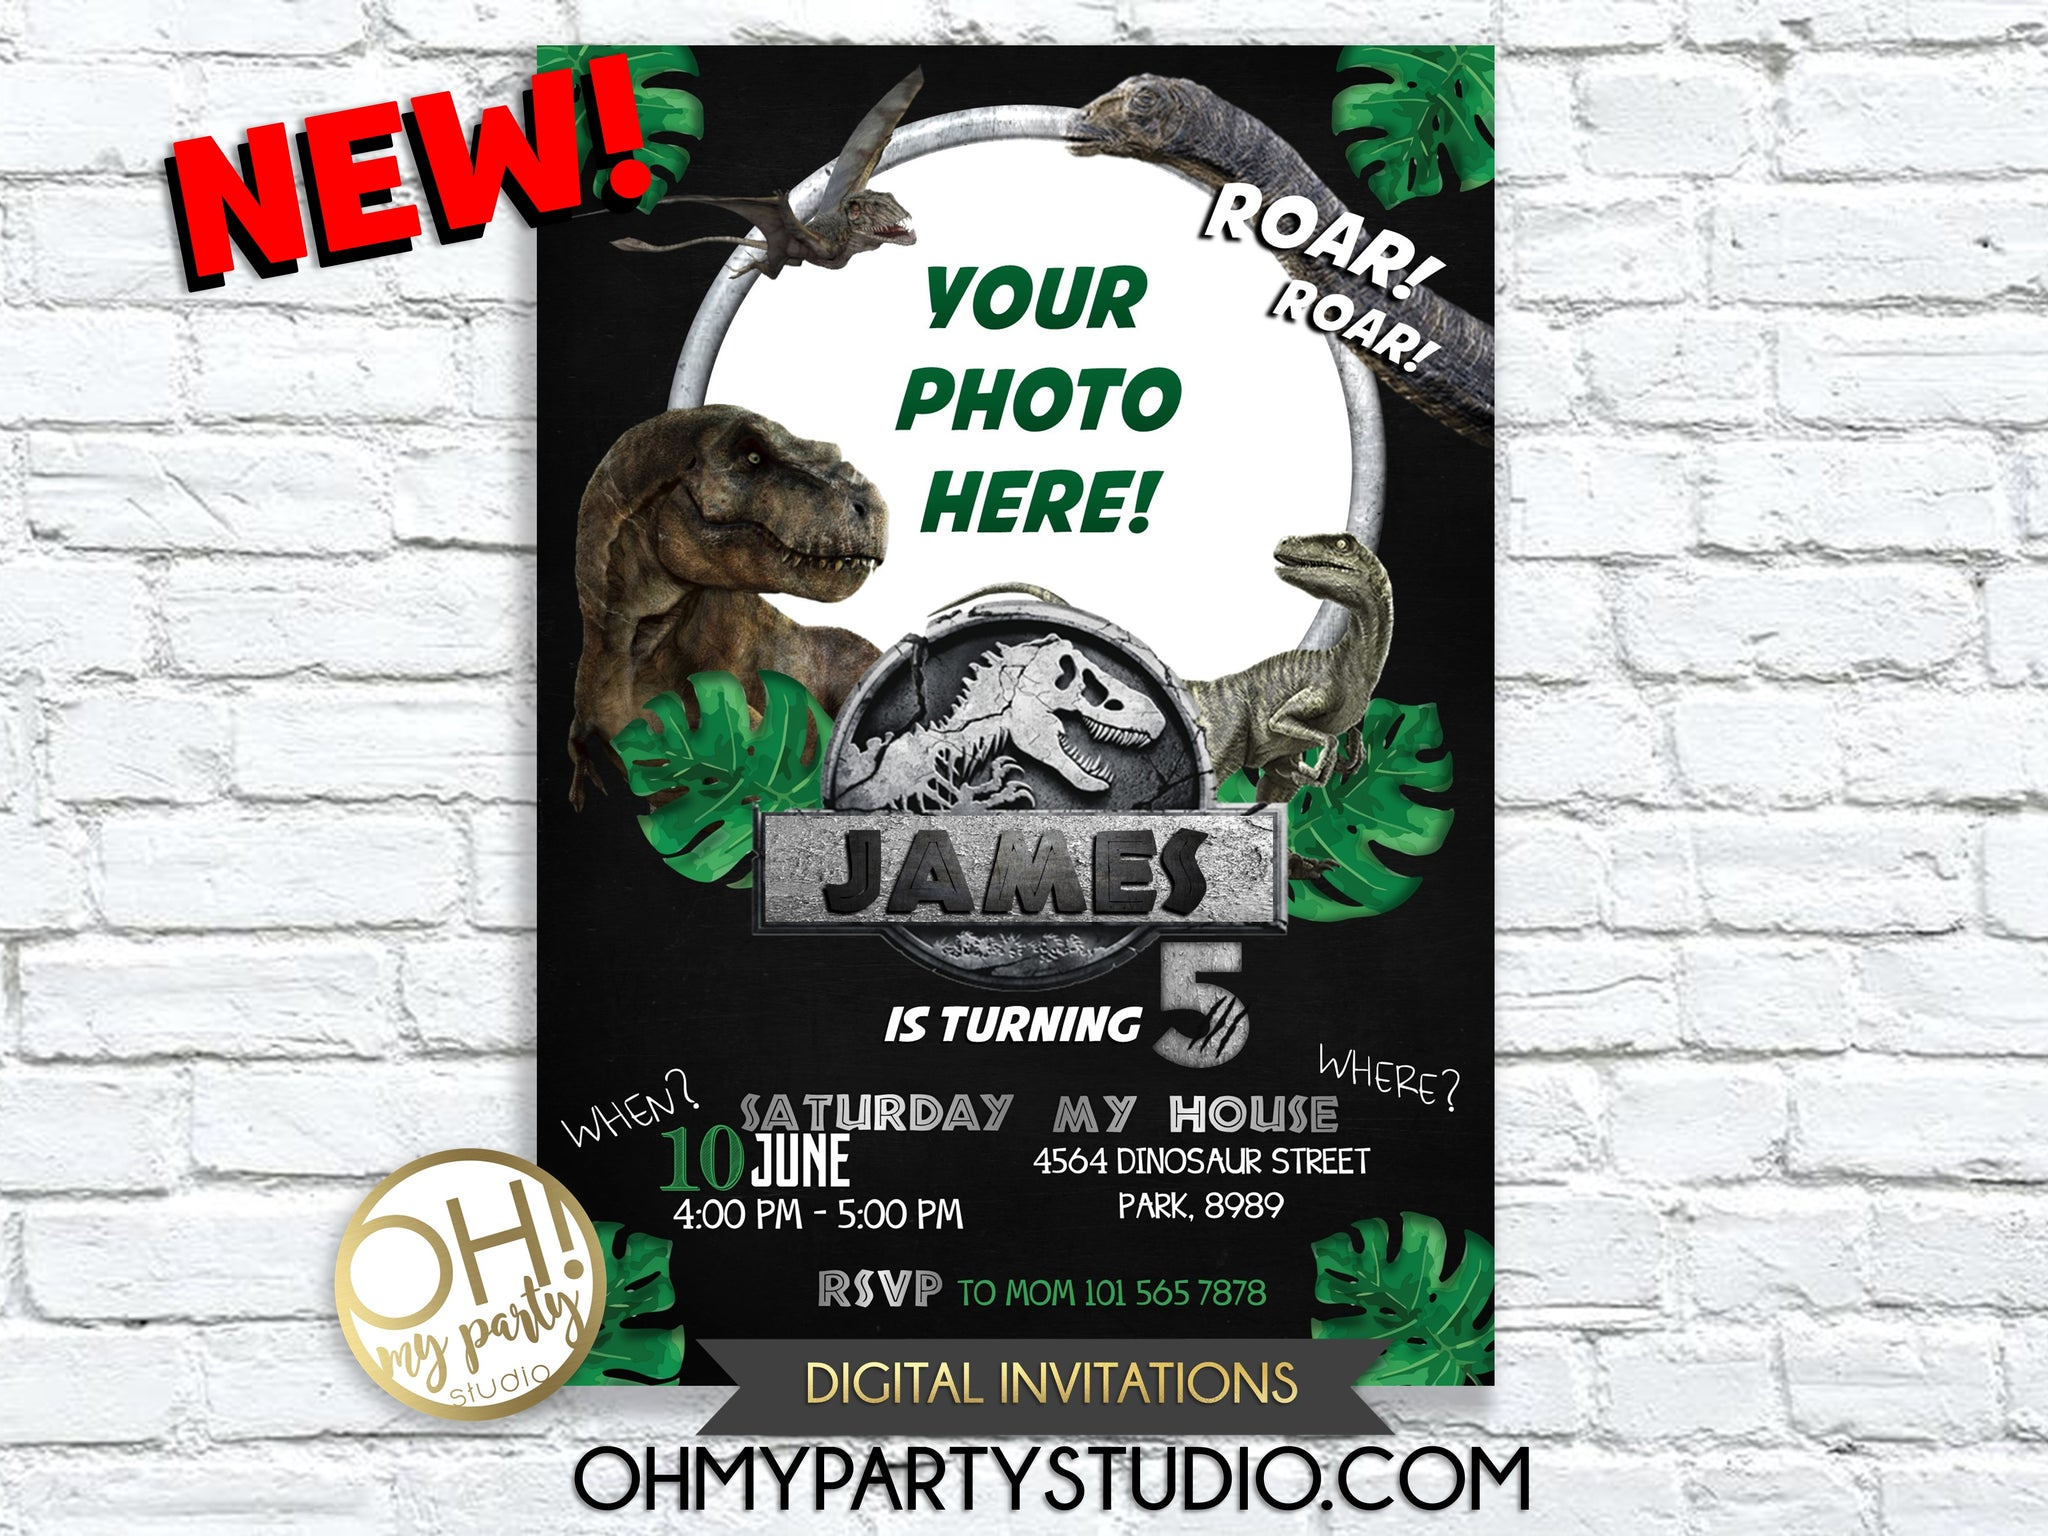 JURASSIC PARK BIRTHDAY INVITATION, JURASSIC INVITATION, DINOSAUR INVITATION, DINOSAURS INVITATION, JURASSIC PARK BIRTHDAY, JURASSIC PARK INVITATION, JURASSIC PARK PARTY, JURASSIC PARK PRINTABLES, DINOSAURS BIRTHDAY INVITATION, DINOSAURS INVITATION